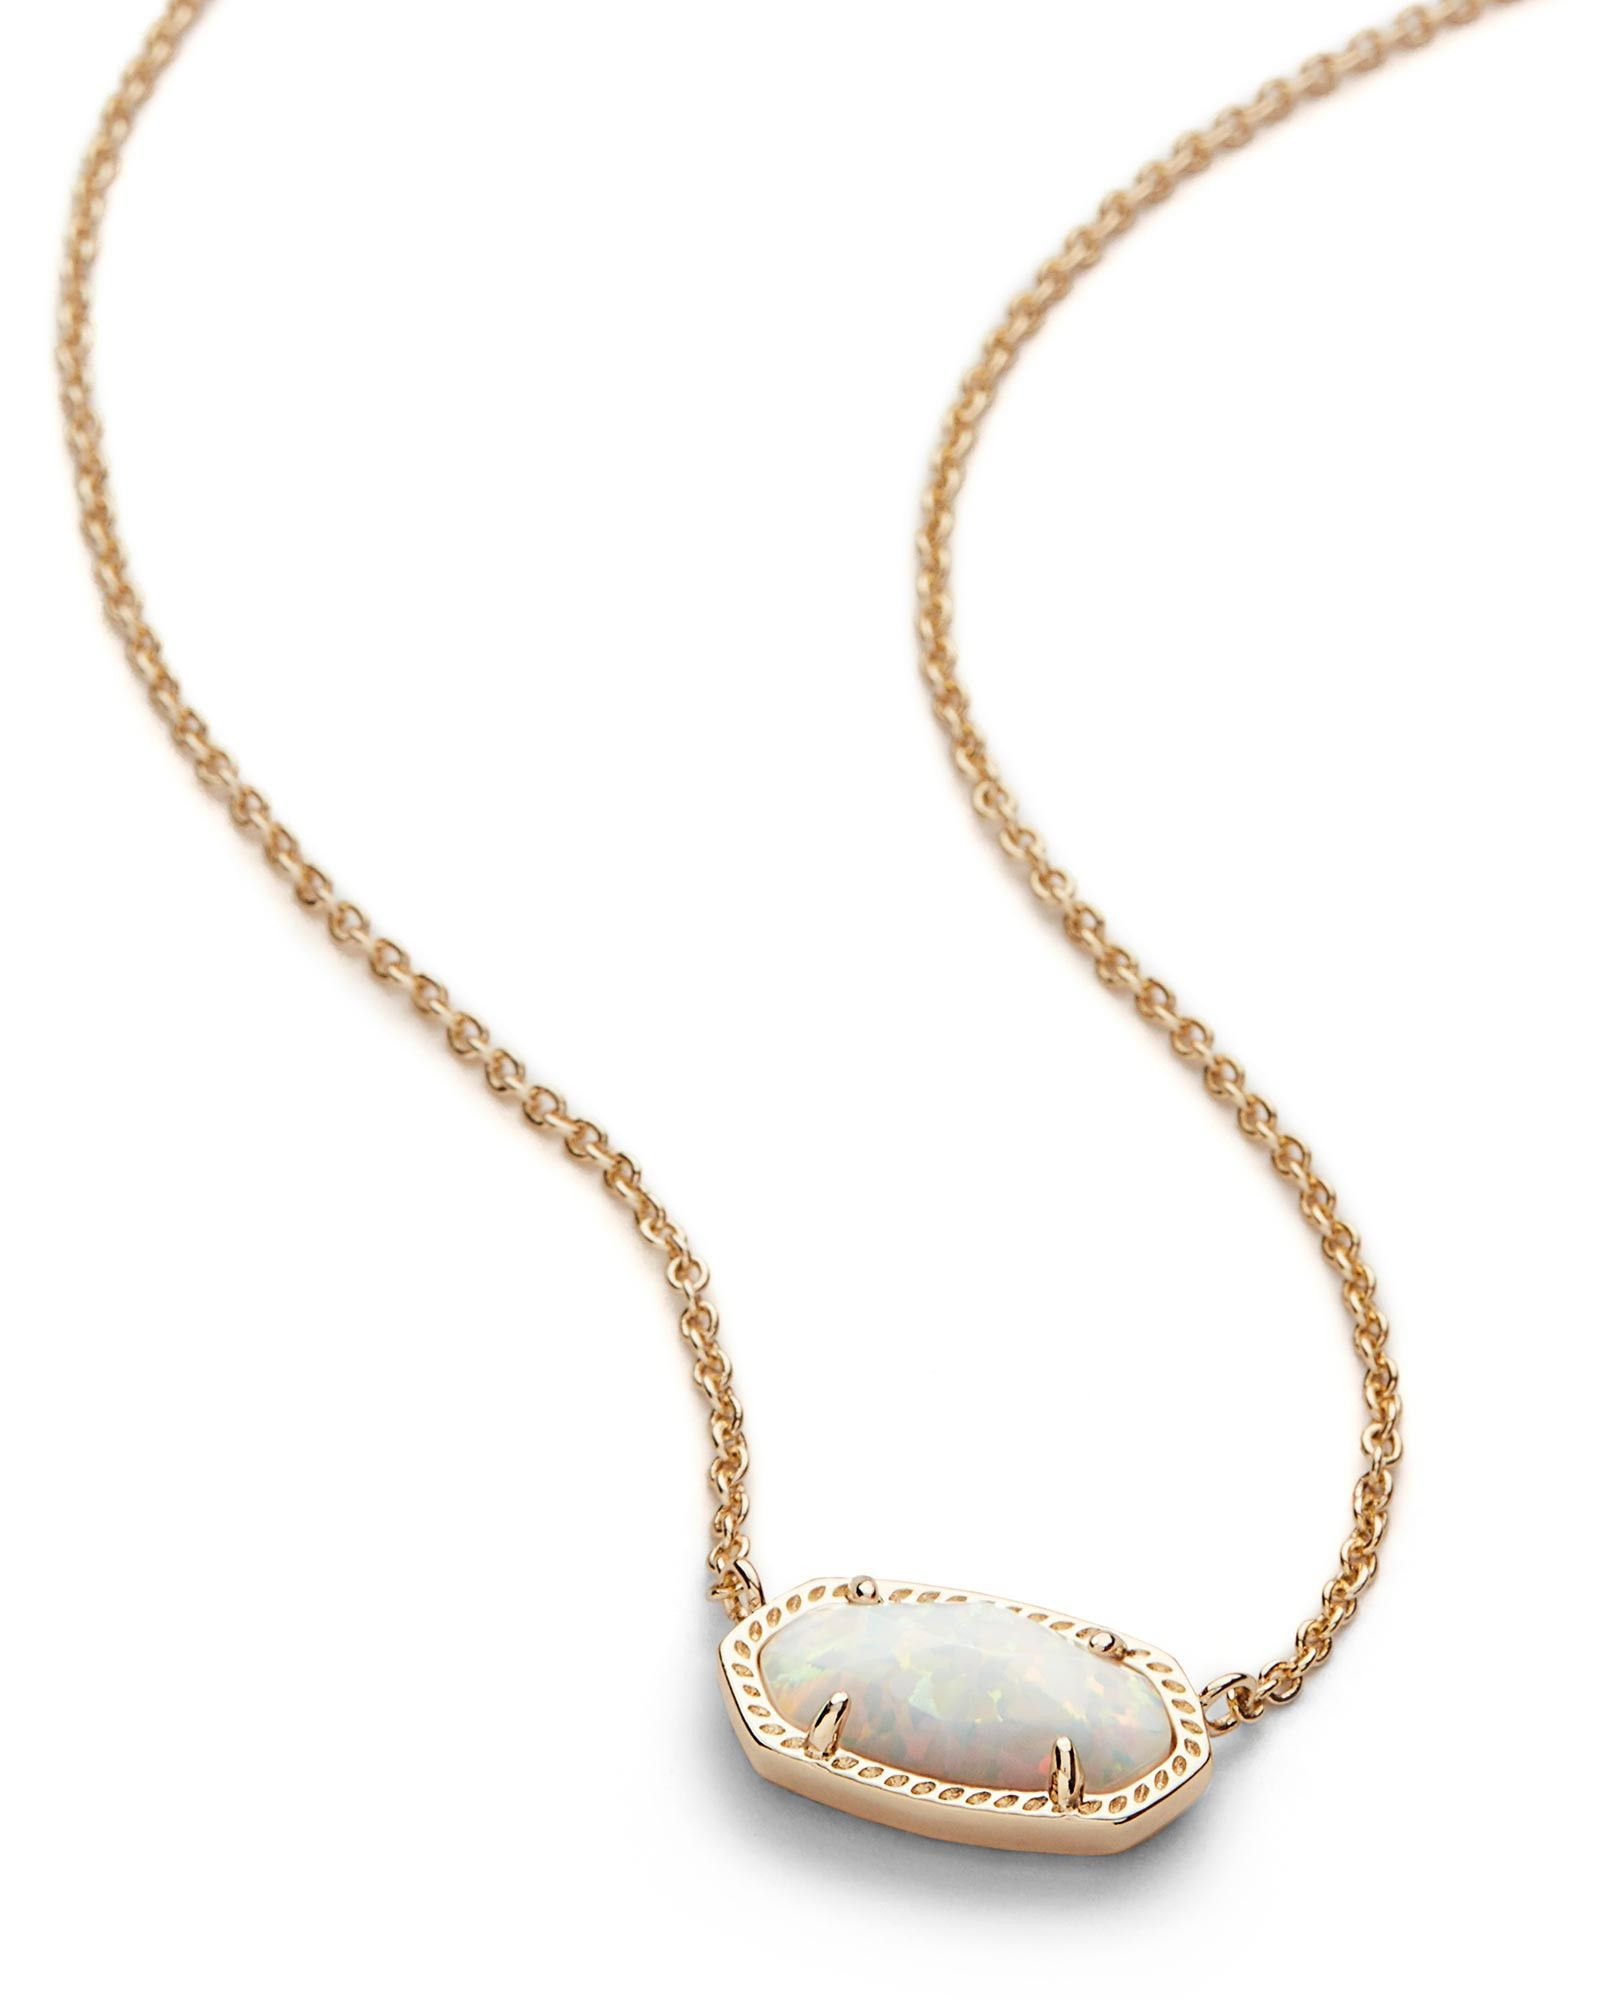 Kendra scott elisa necklace kendra scott fashion necklace and ring